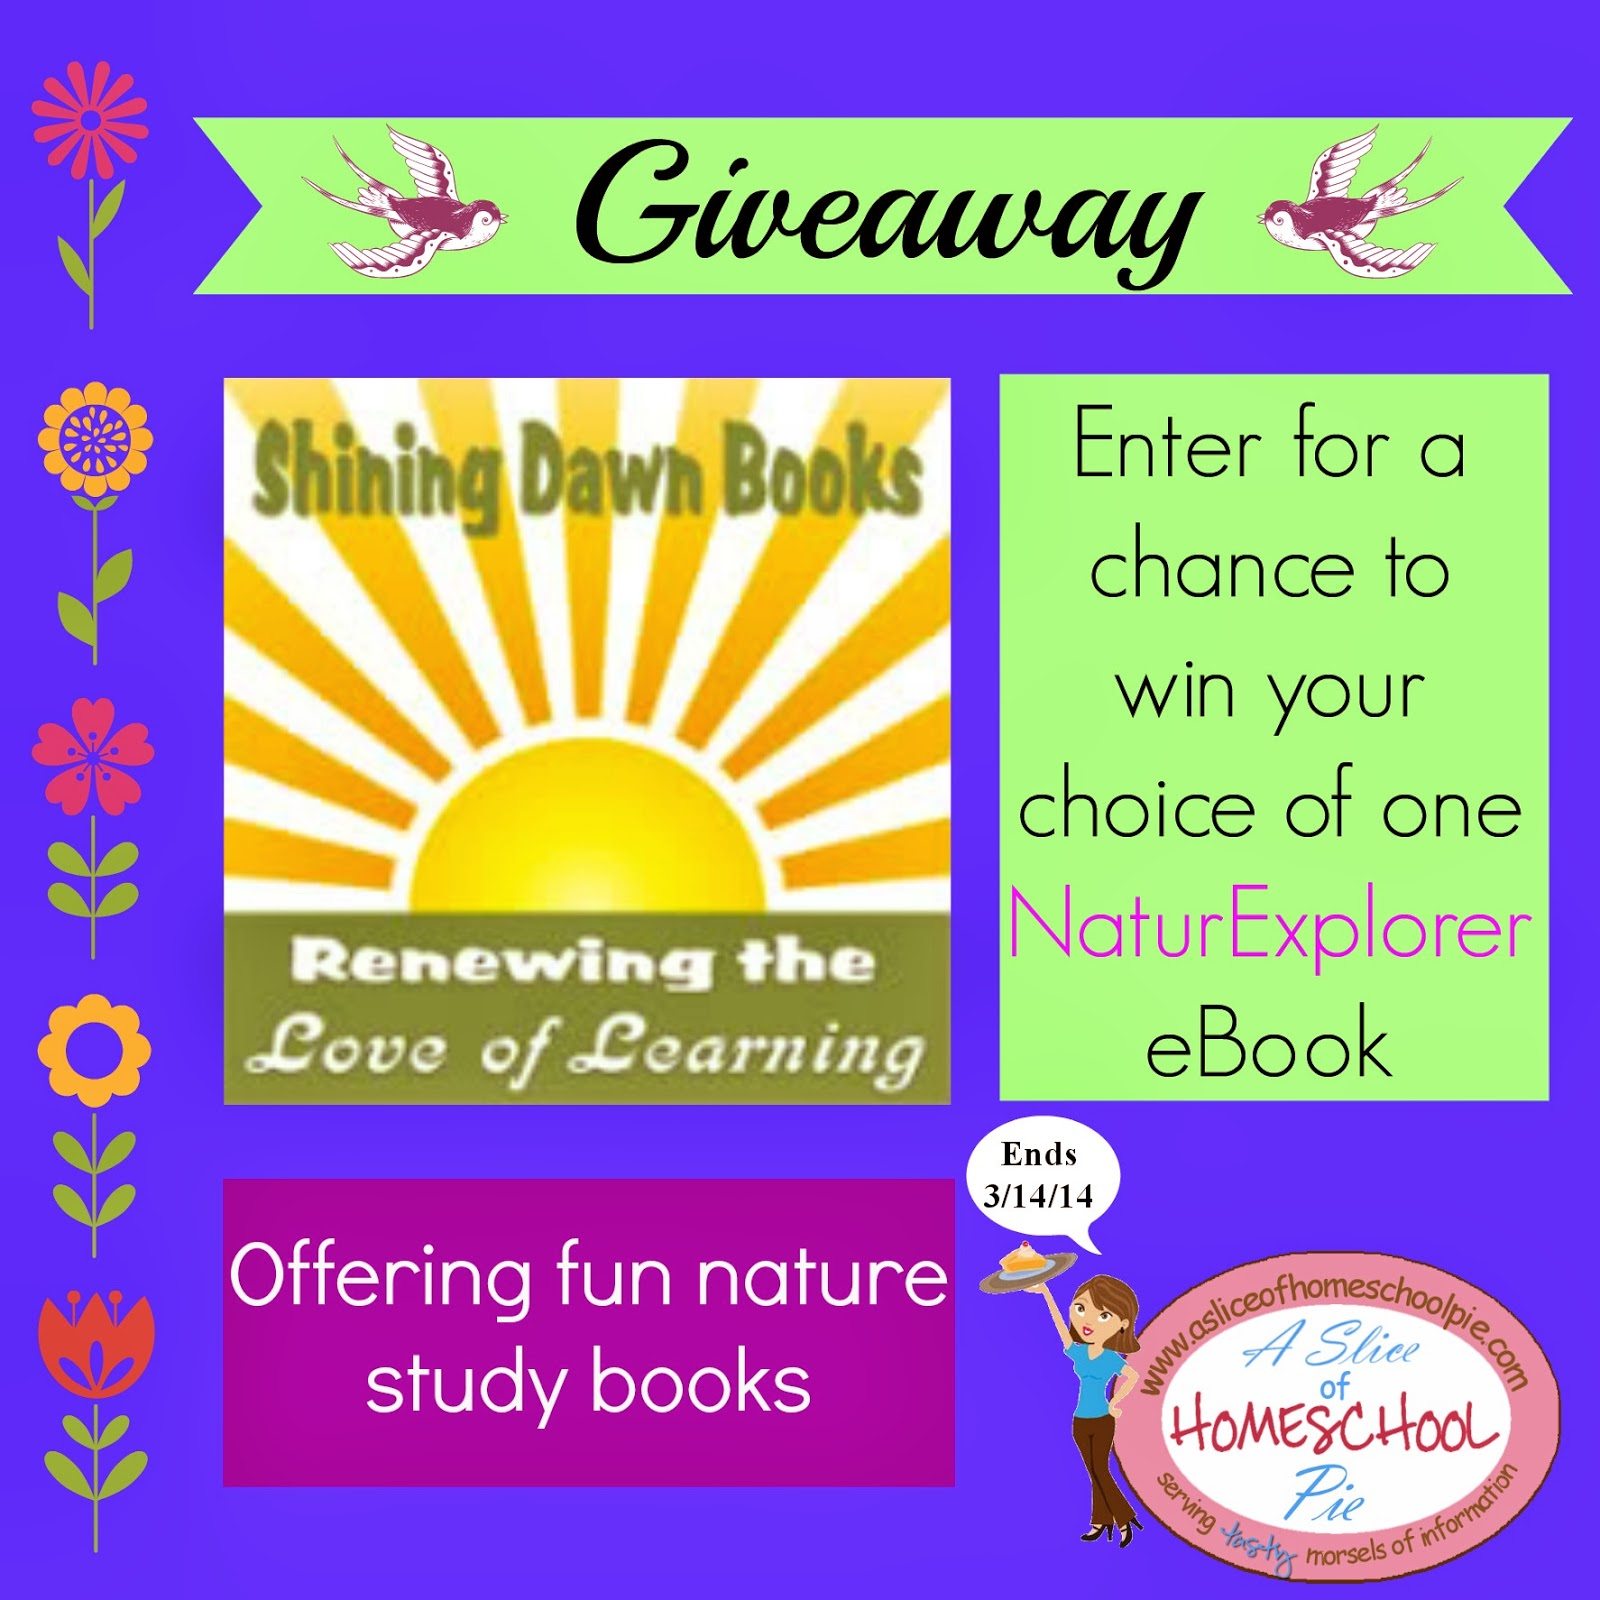 Shining-Dawn-Books-NaturExplorers-Giveaway-ASliceOfHomeschoolPie